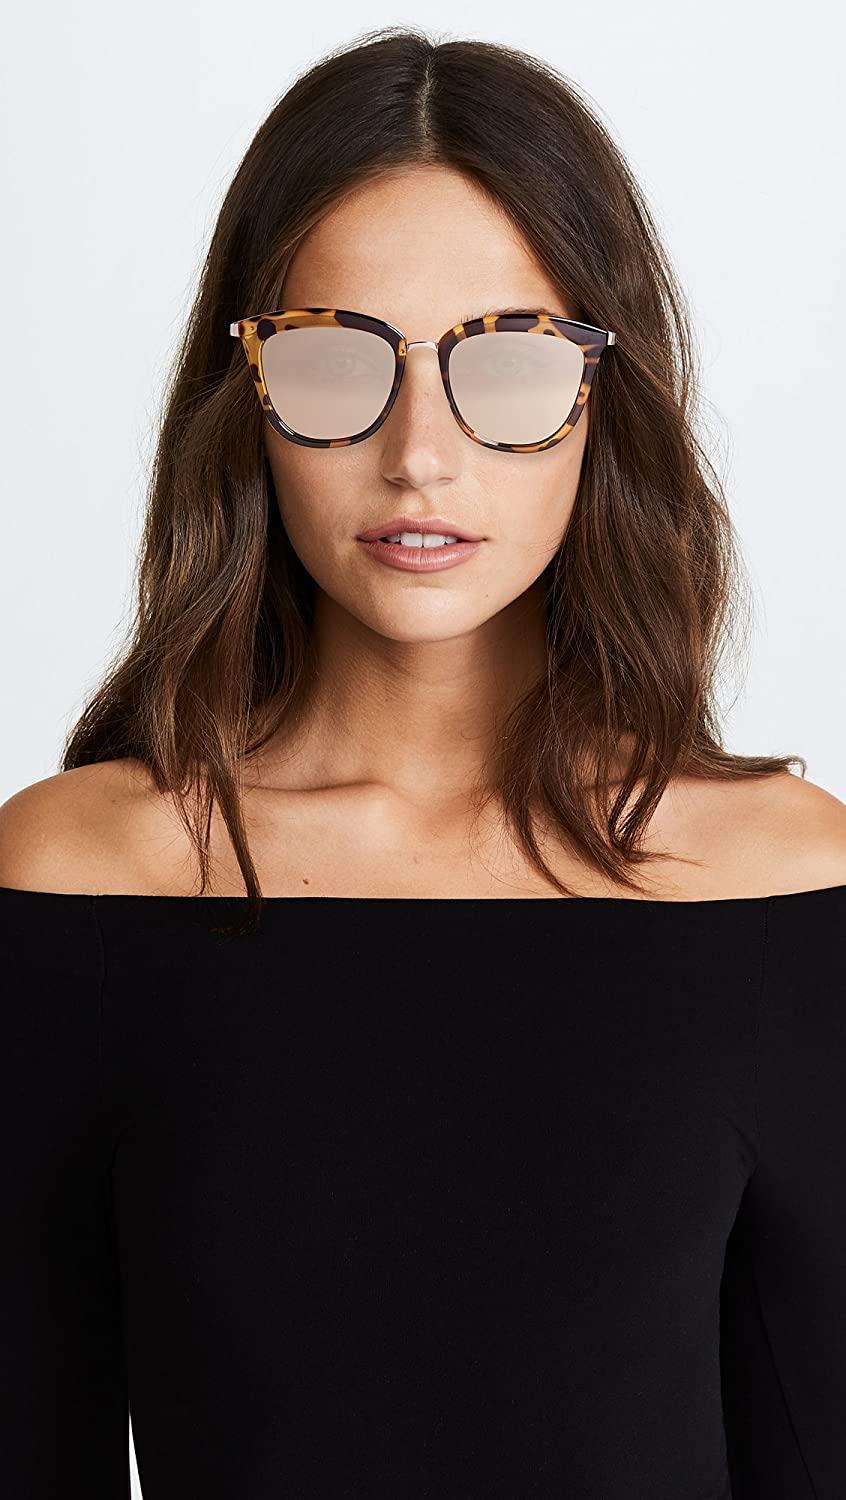 3c7842fd69 Le Specs LSP1702140 Syrup Tort Syrup Tort Caliente Cats Eyes Sunglasses  Lens Ca  Le Specs  Amazon.co.uk  Clothing